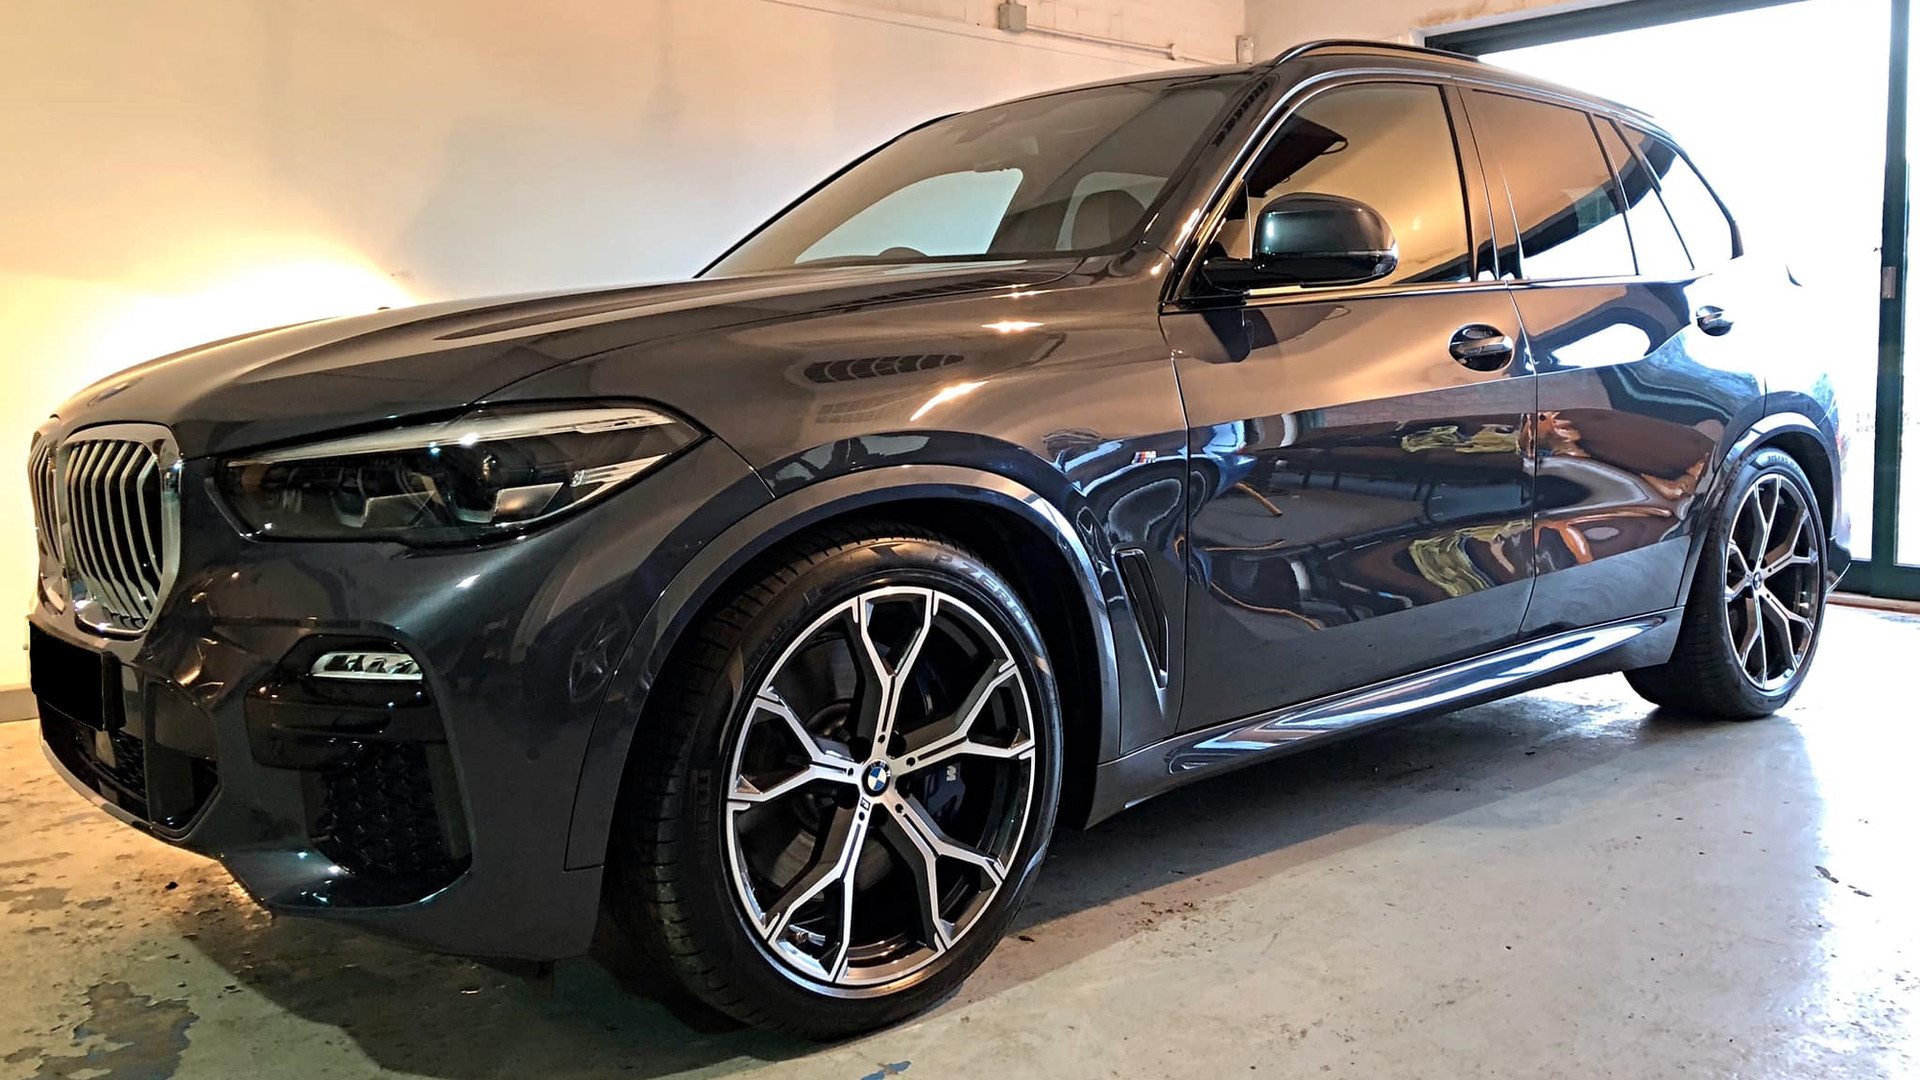 BMW X5 car detail